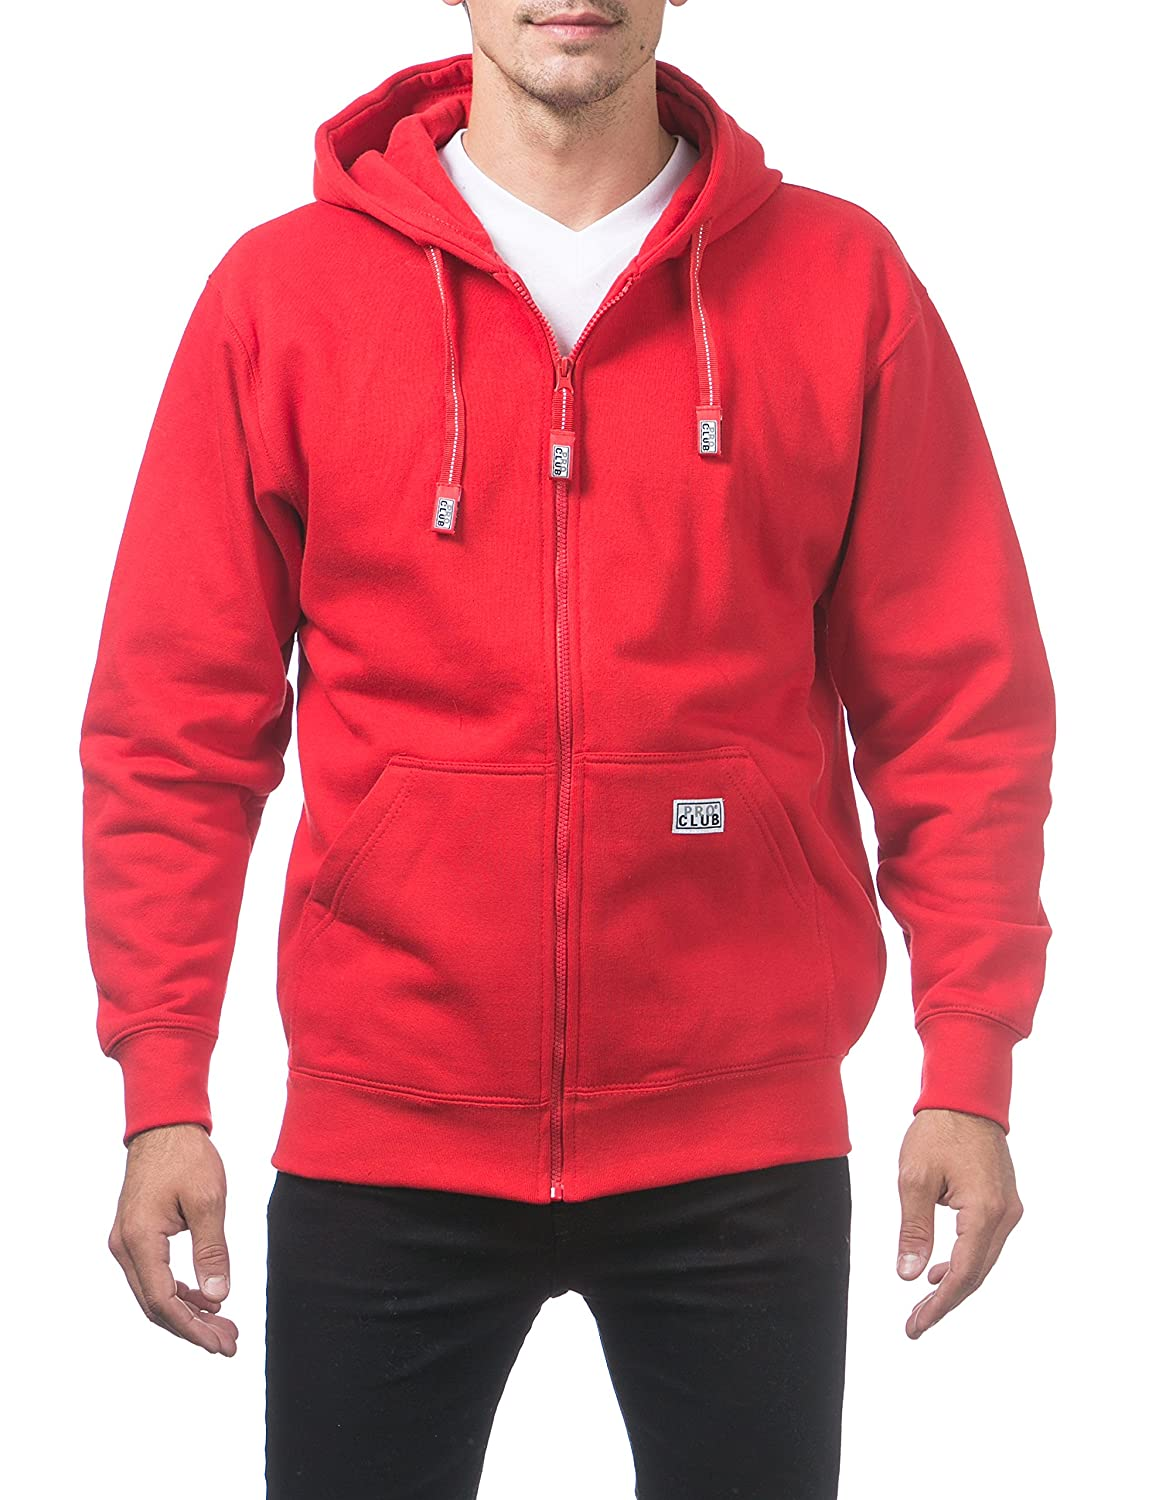 Pro Club Men's Heavyweight Full Zip Fleece Hoodie 143